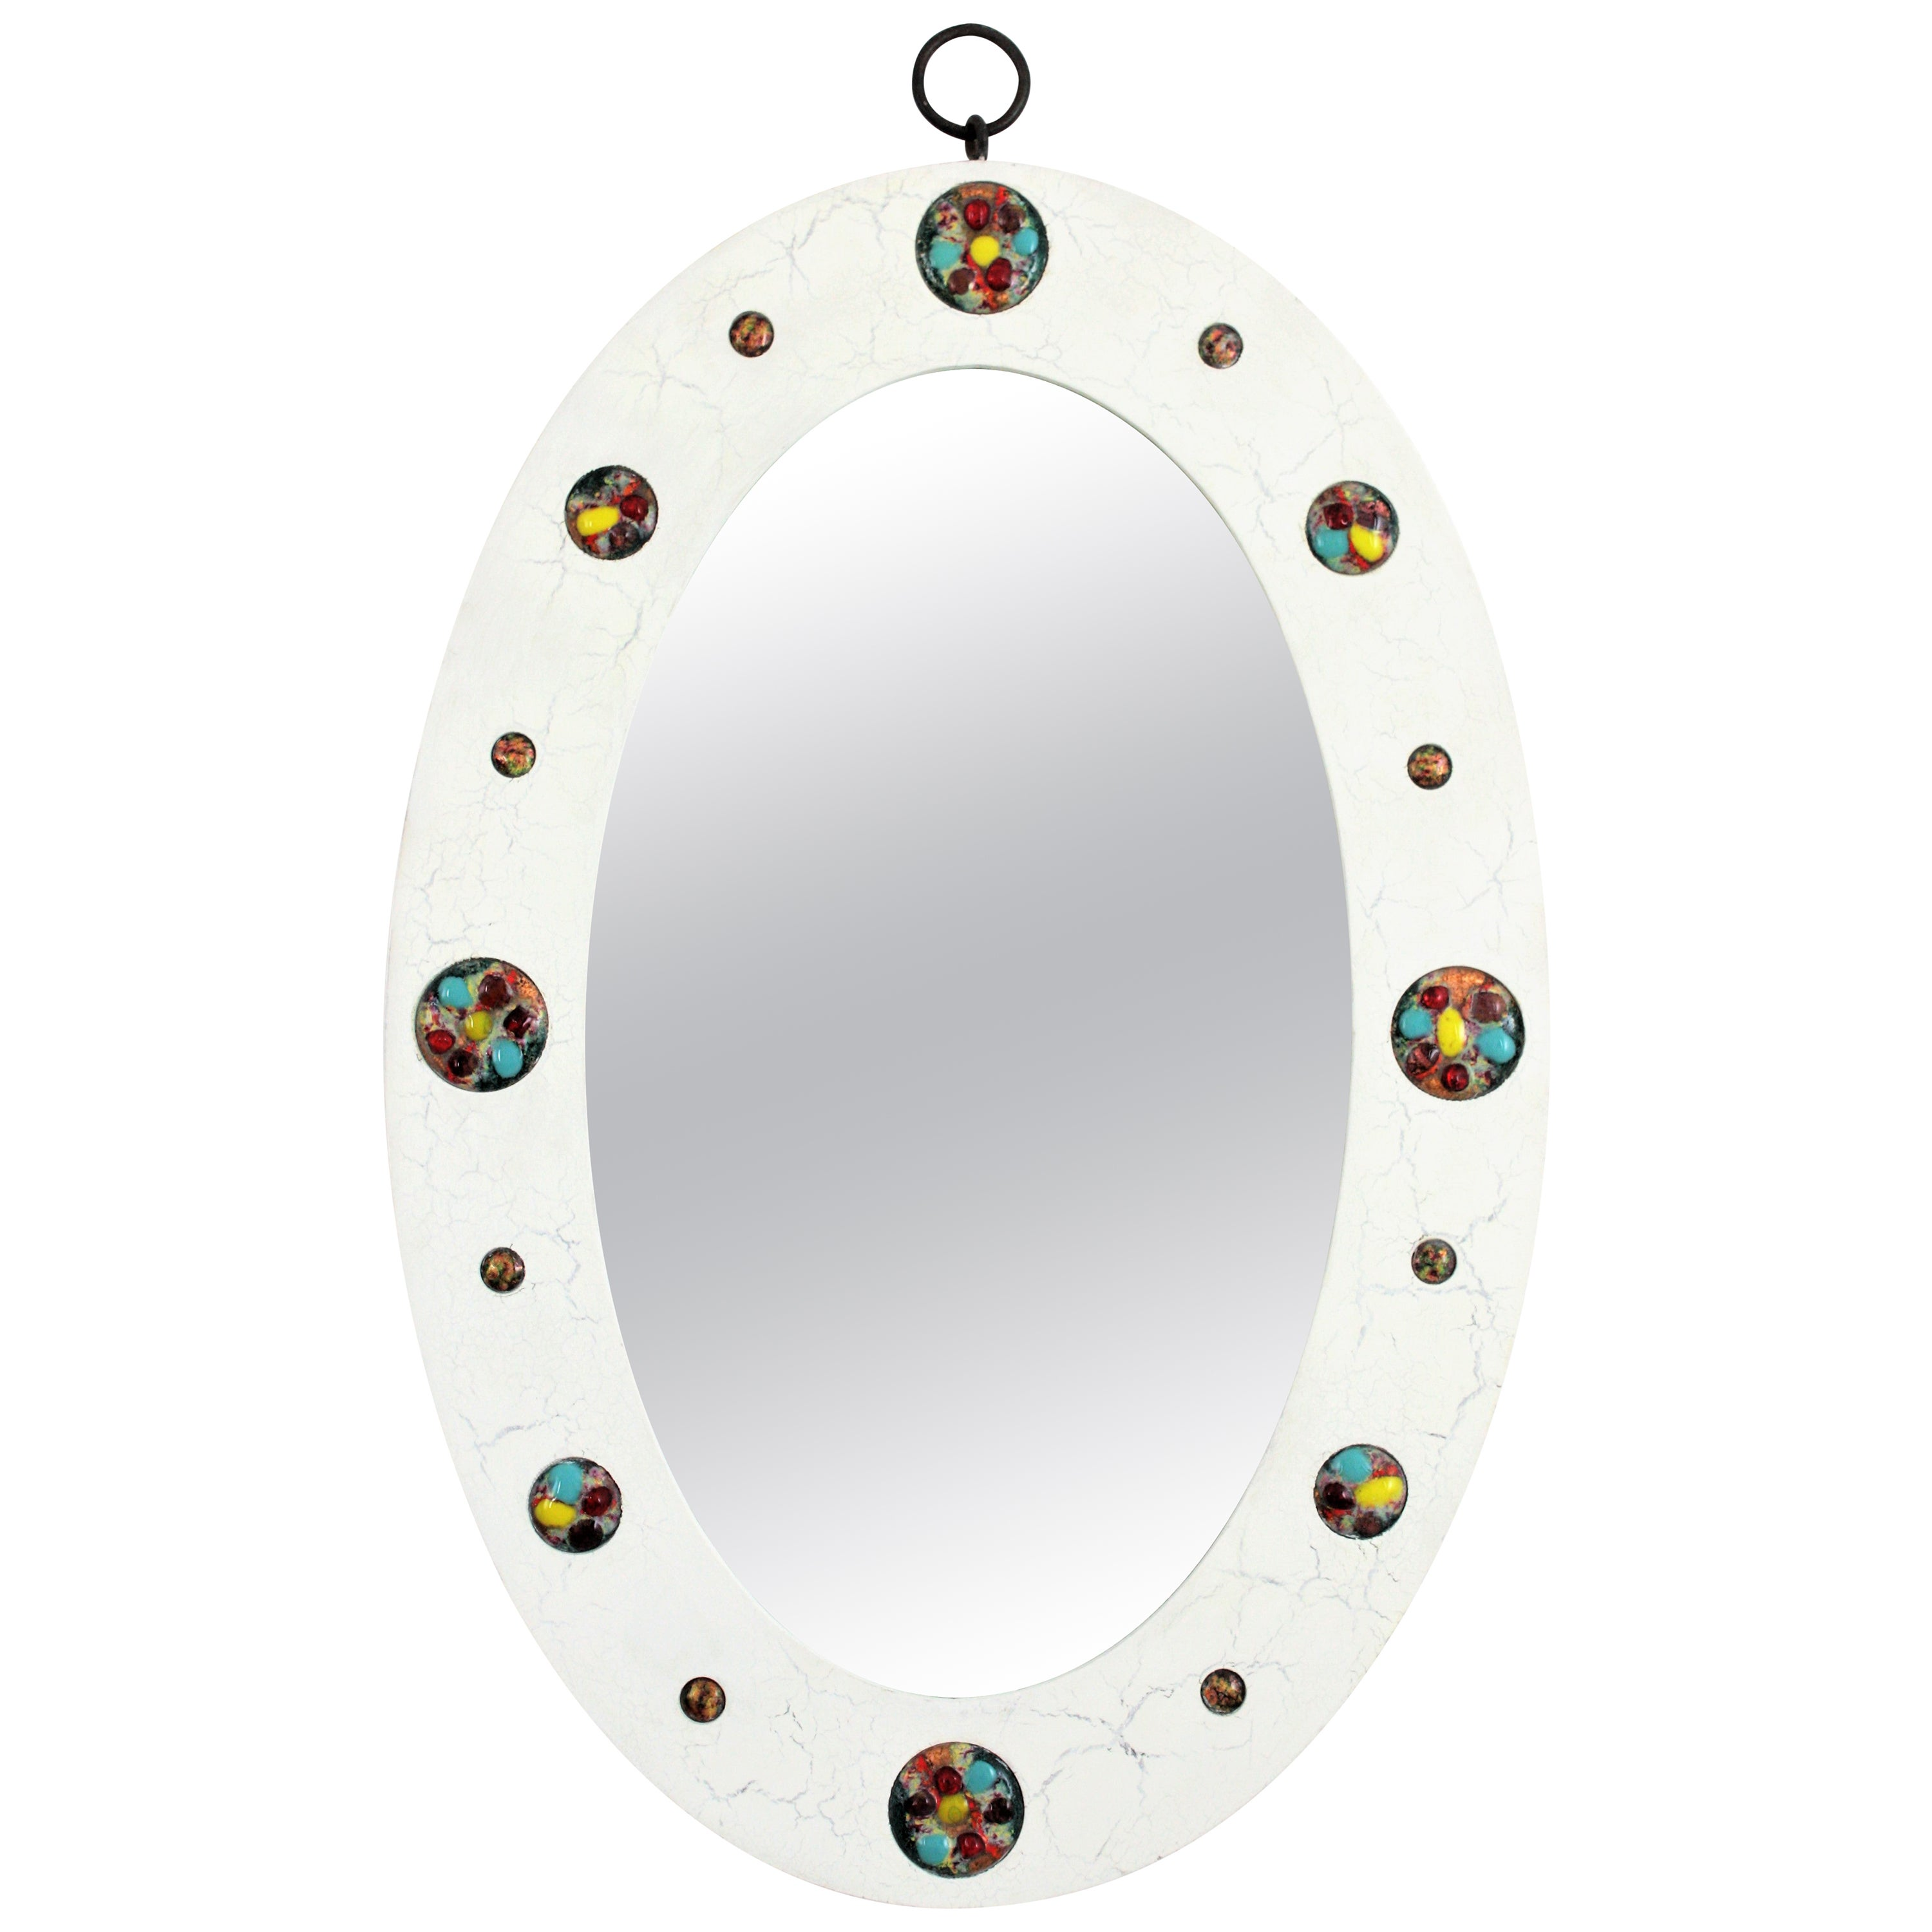 Spanish Modern Oval Mirror with Enamel Multi-Color Decorations, 1960s